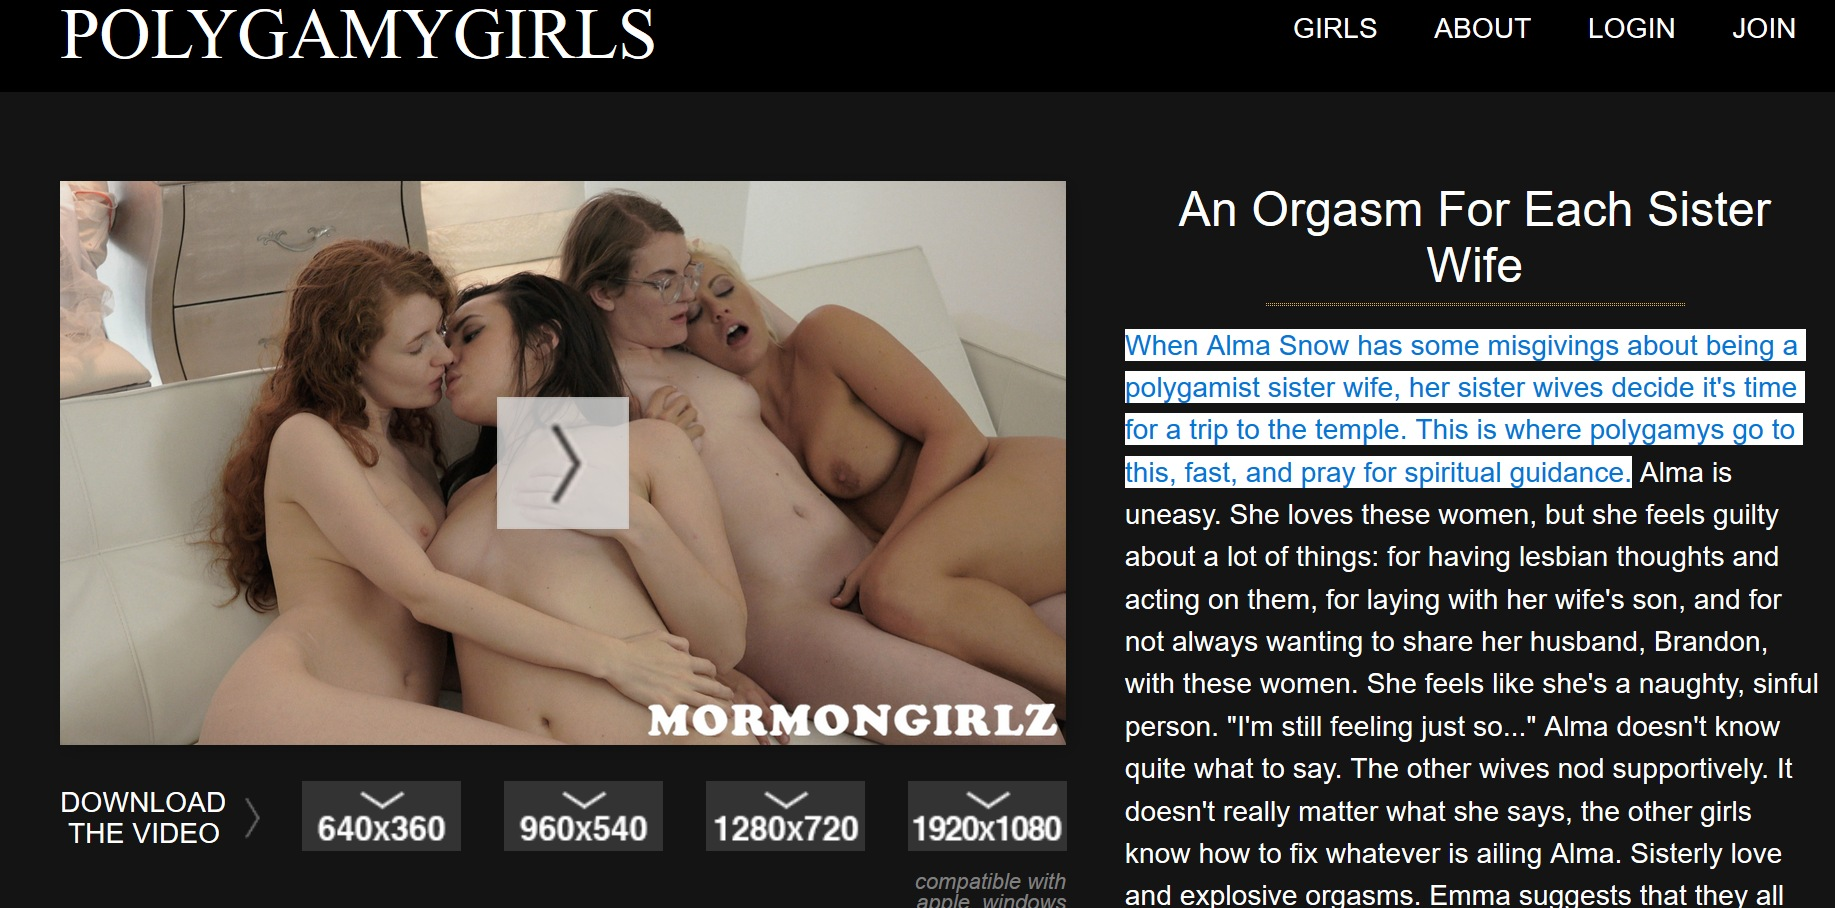 preview image password  for polygamygirls.com